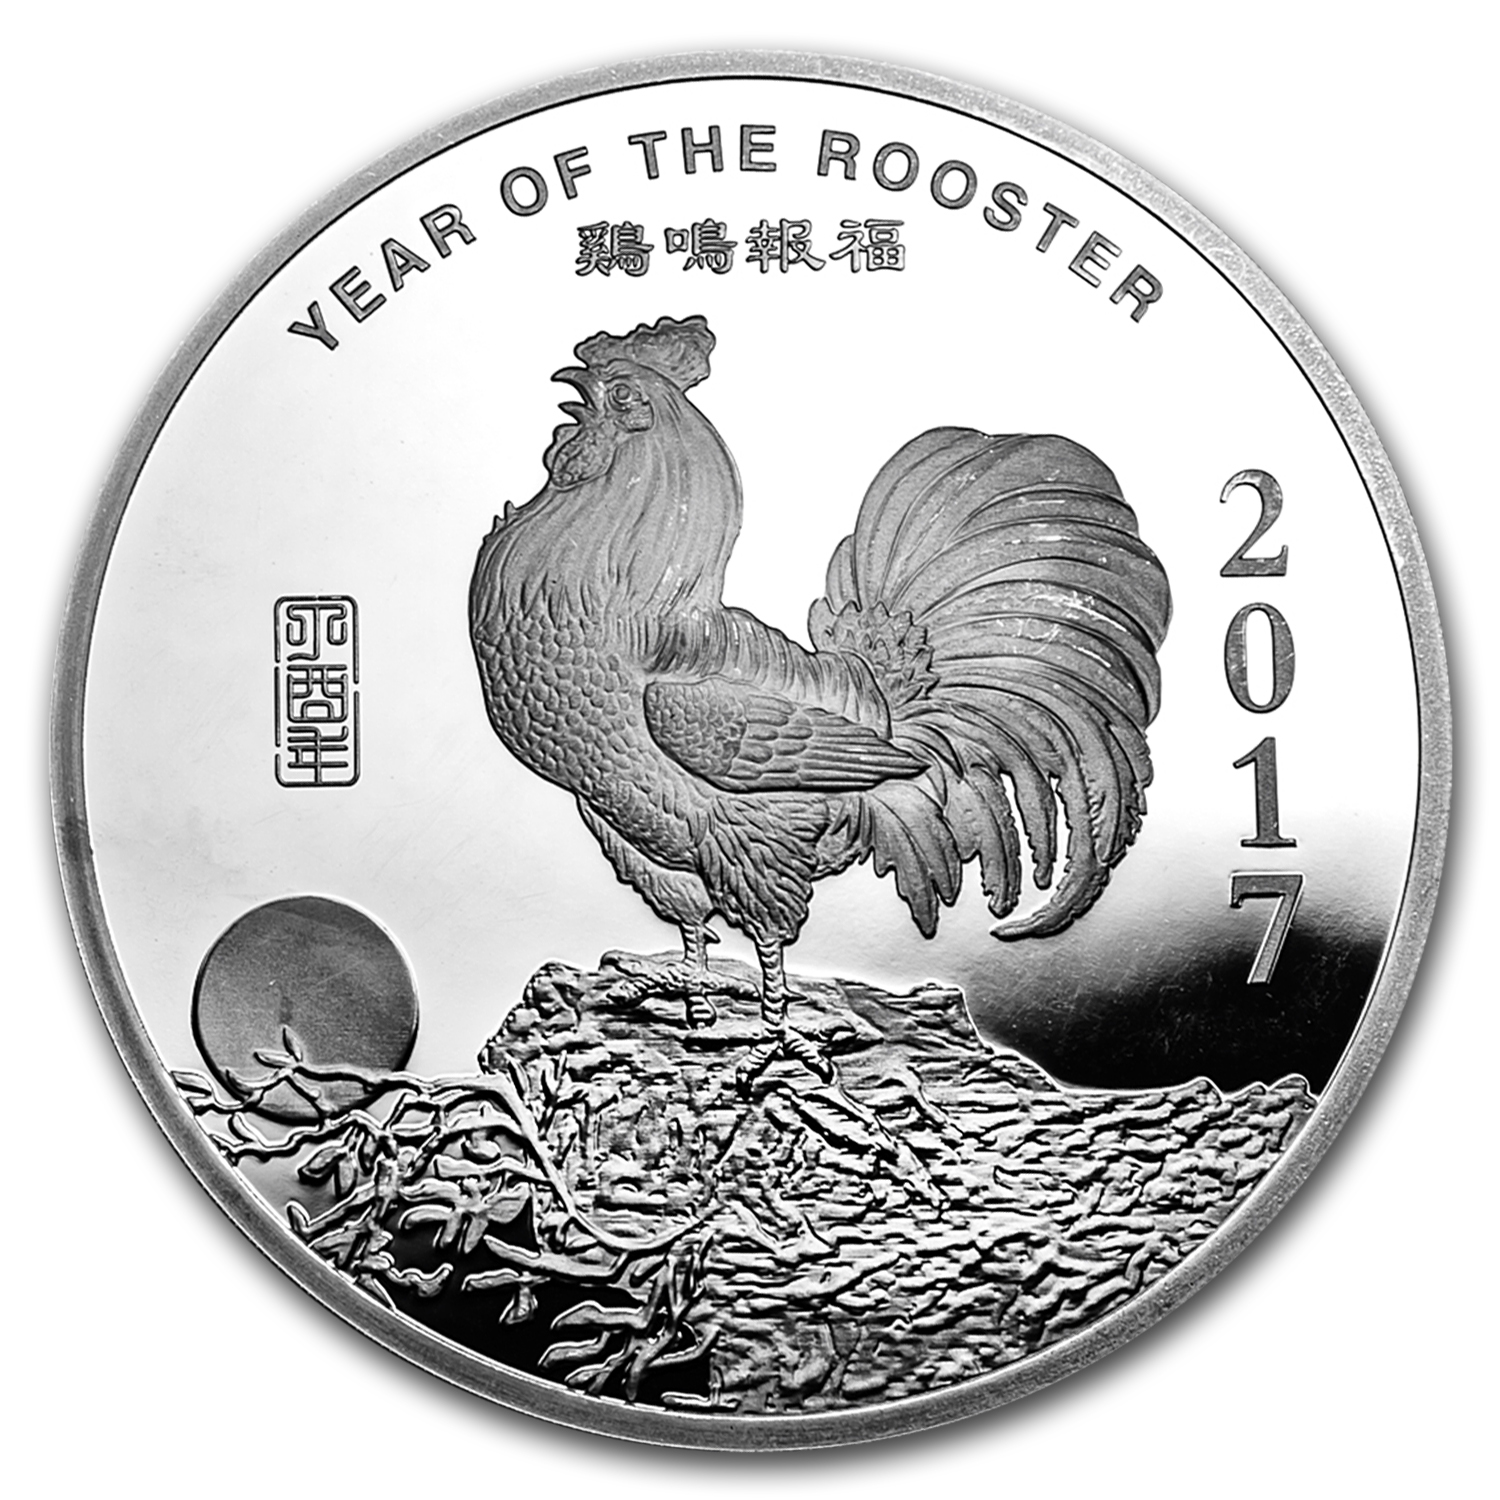 10 oz Silver Round - APMEX (2017 Year of the Rooster)